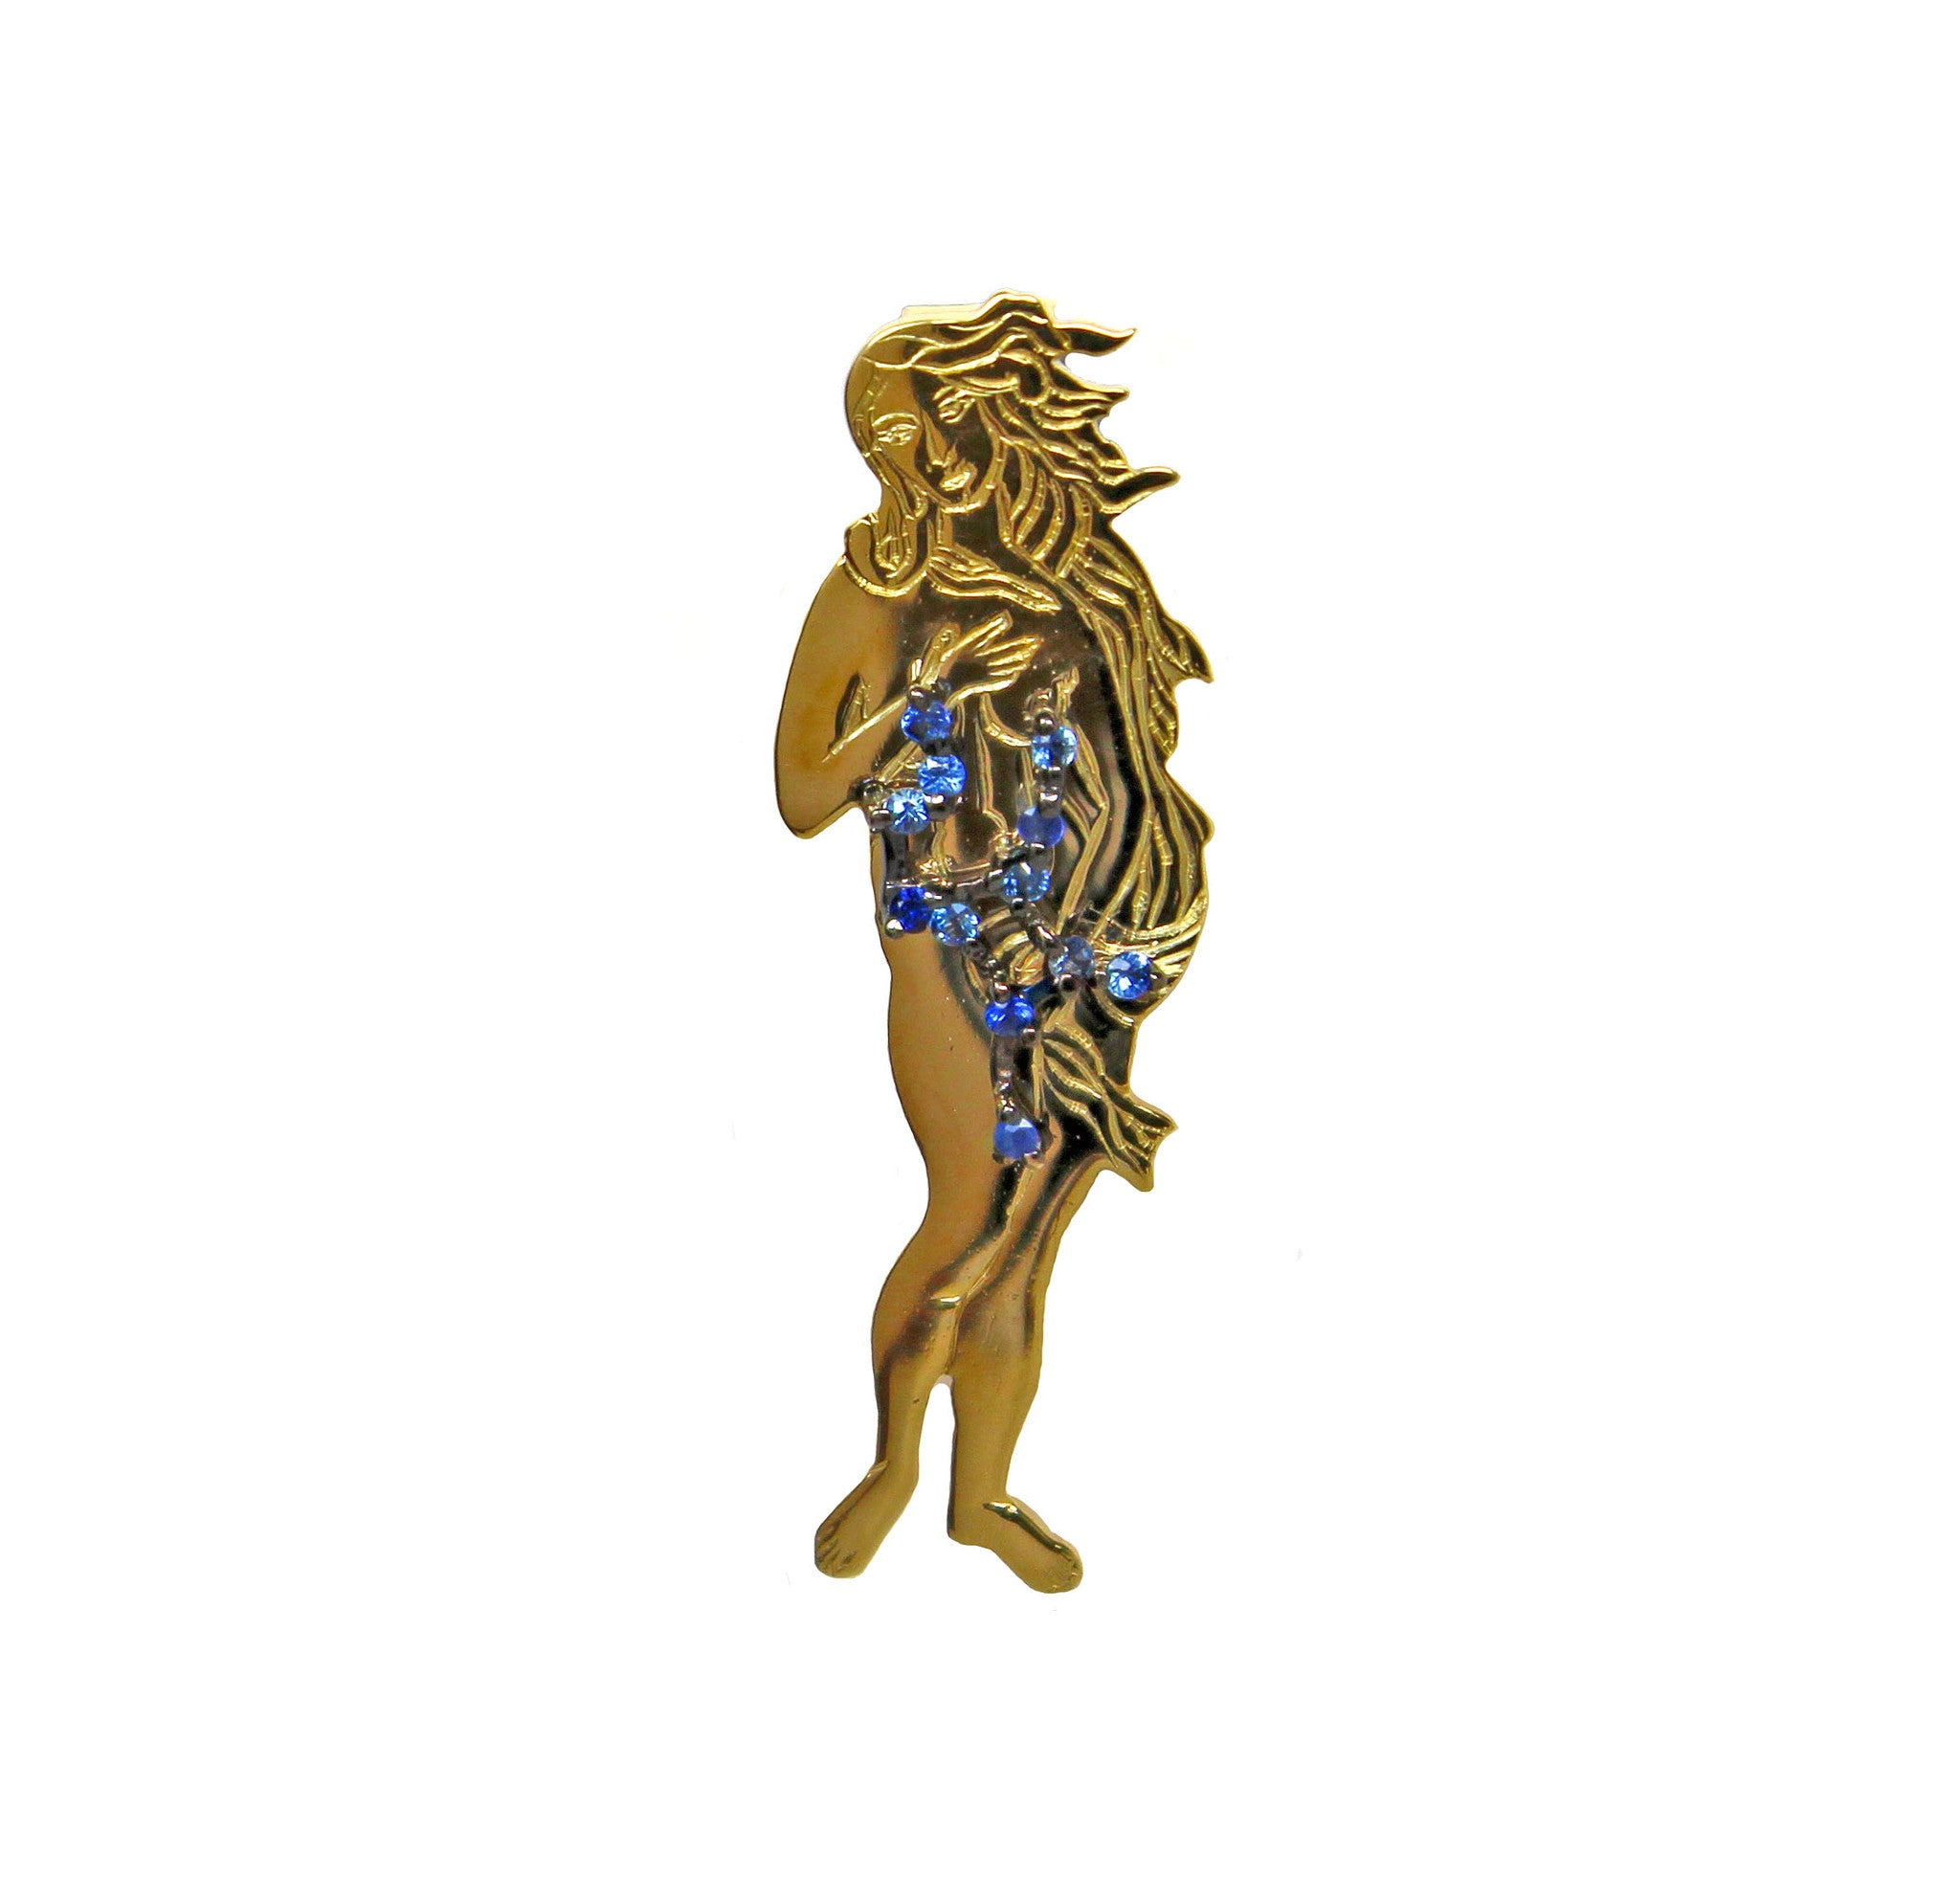 Virgo star sign as Botticelli's Venus in solid gold Virgo constellation blue sapphire birthstone black gold pendant - CLICK HERE - Sarah Hughes - 3